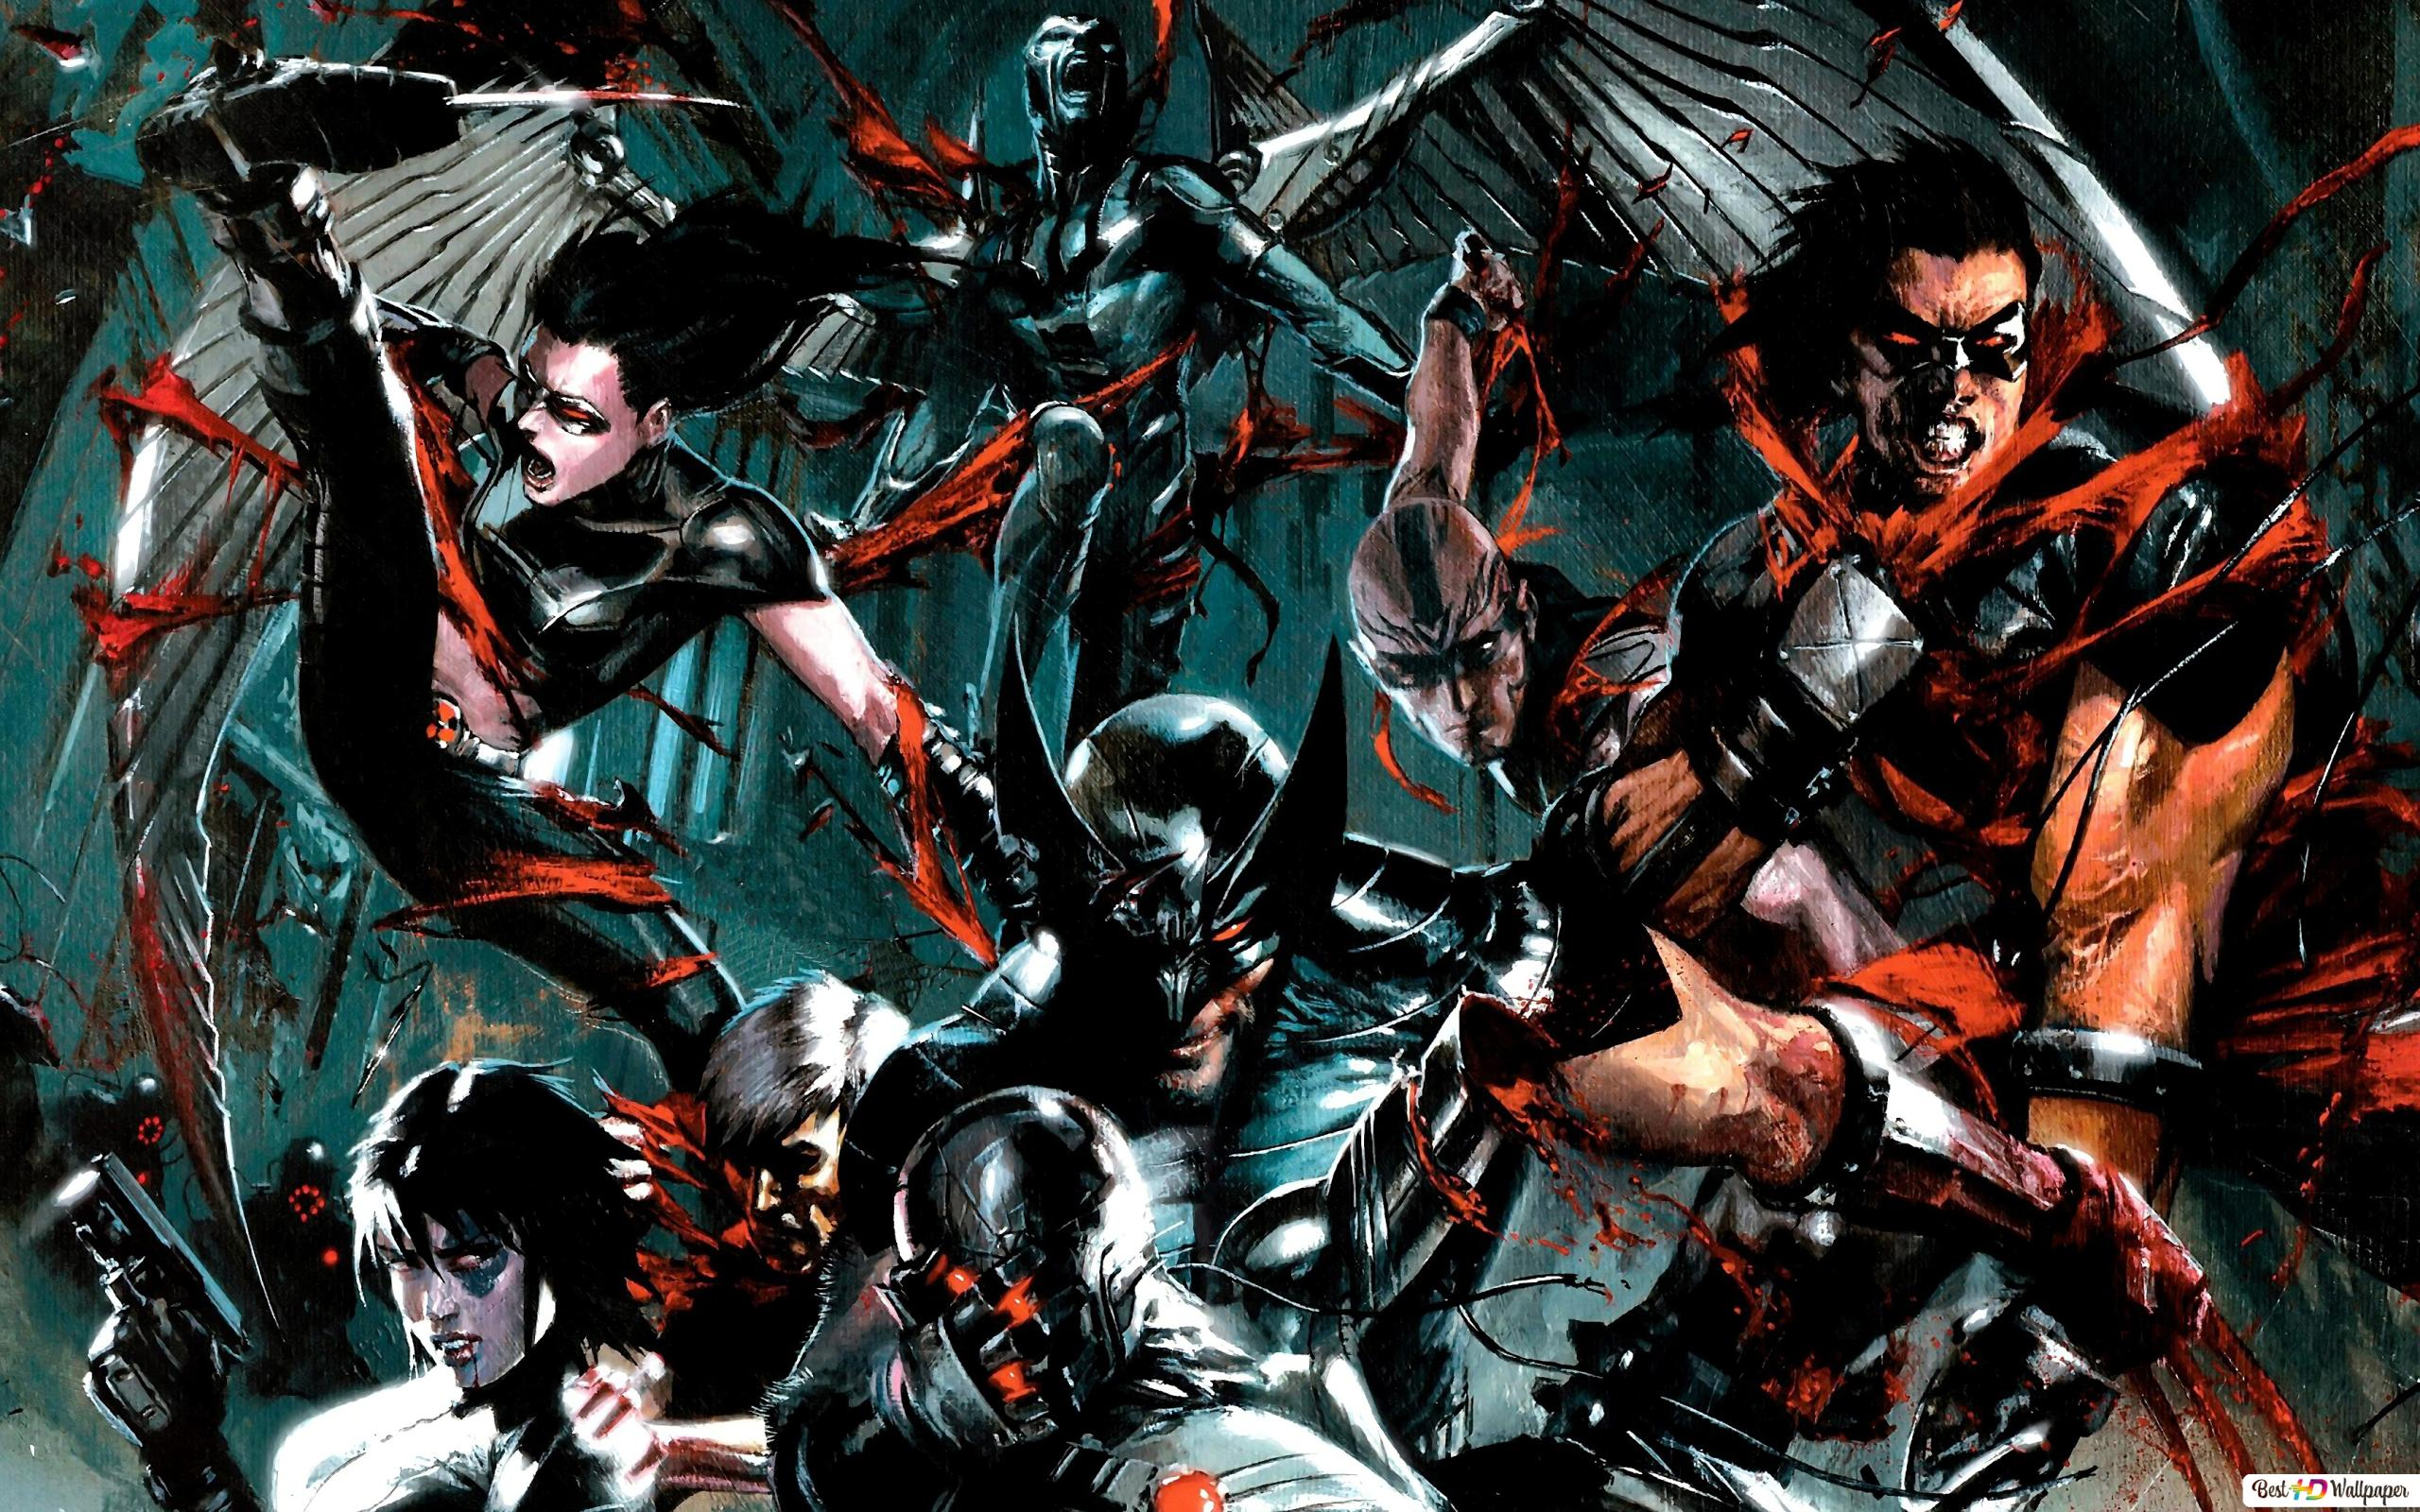 Descargar Fondo De Pantalla X Force Hd